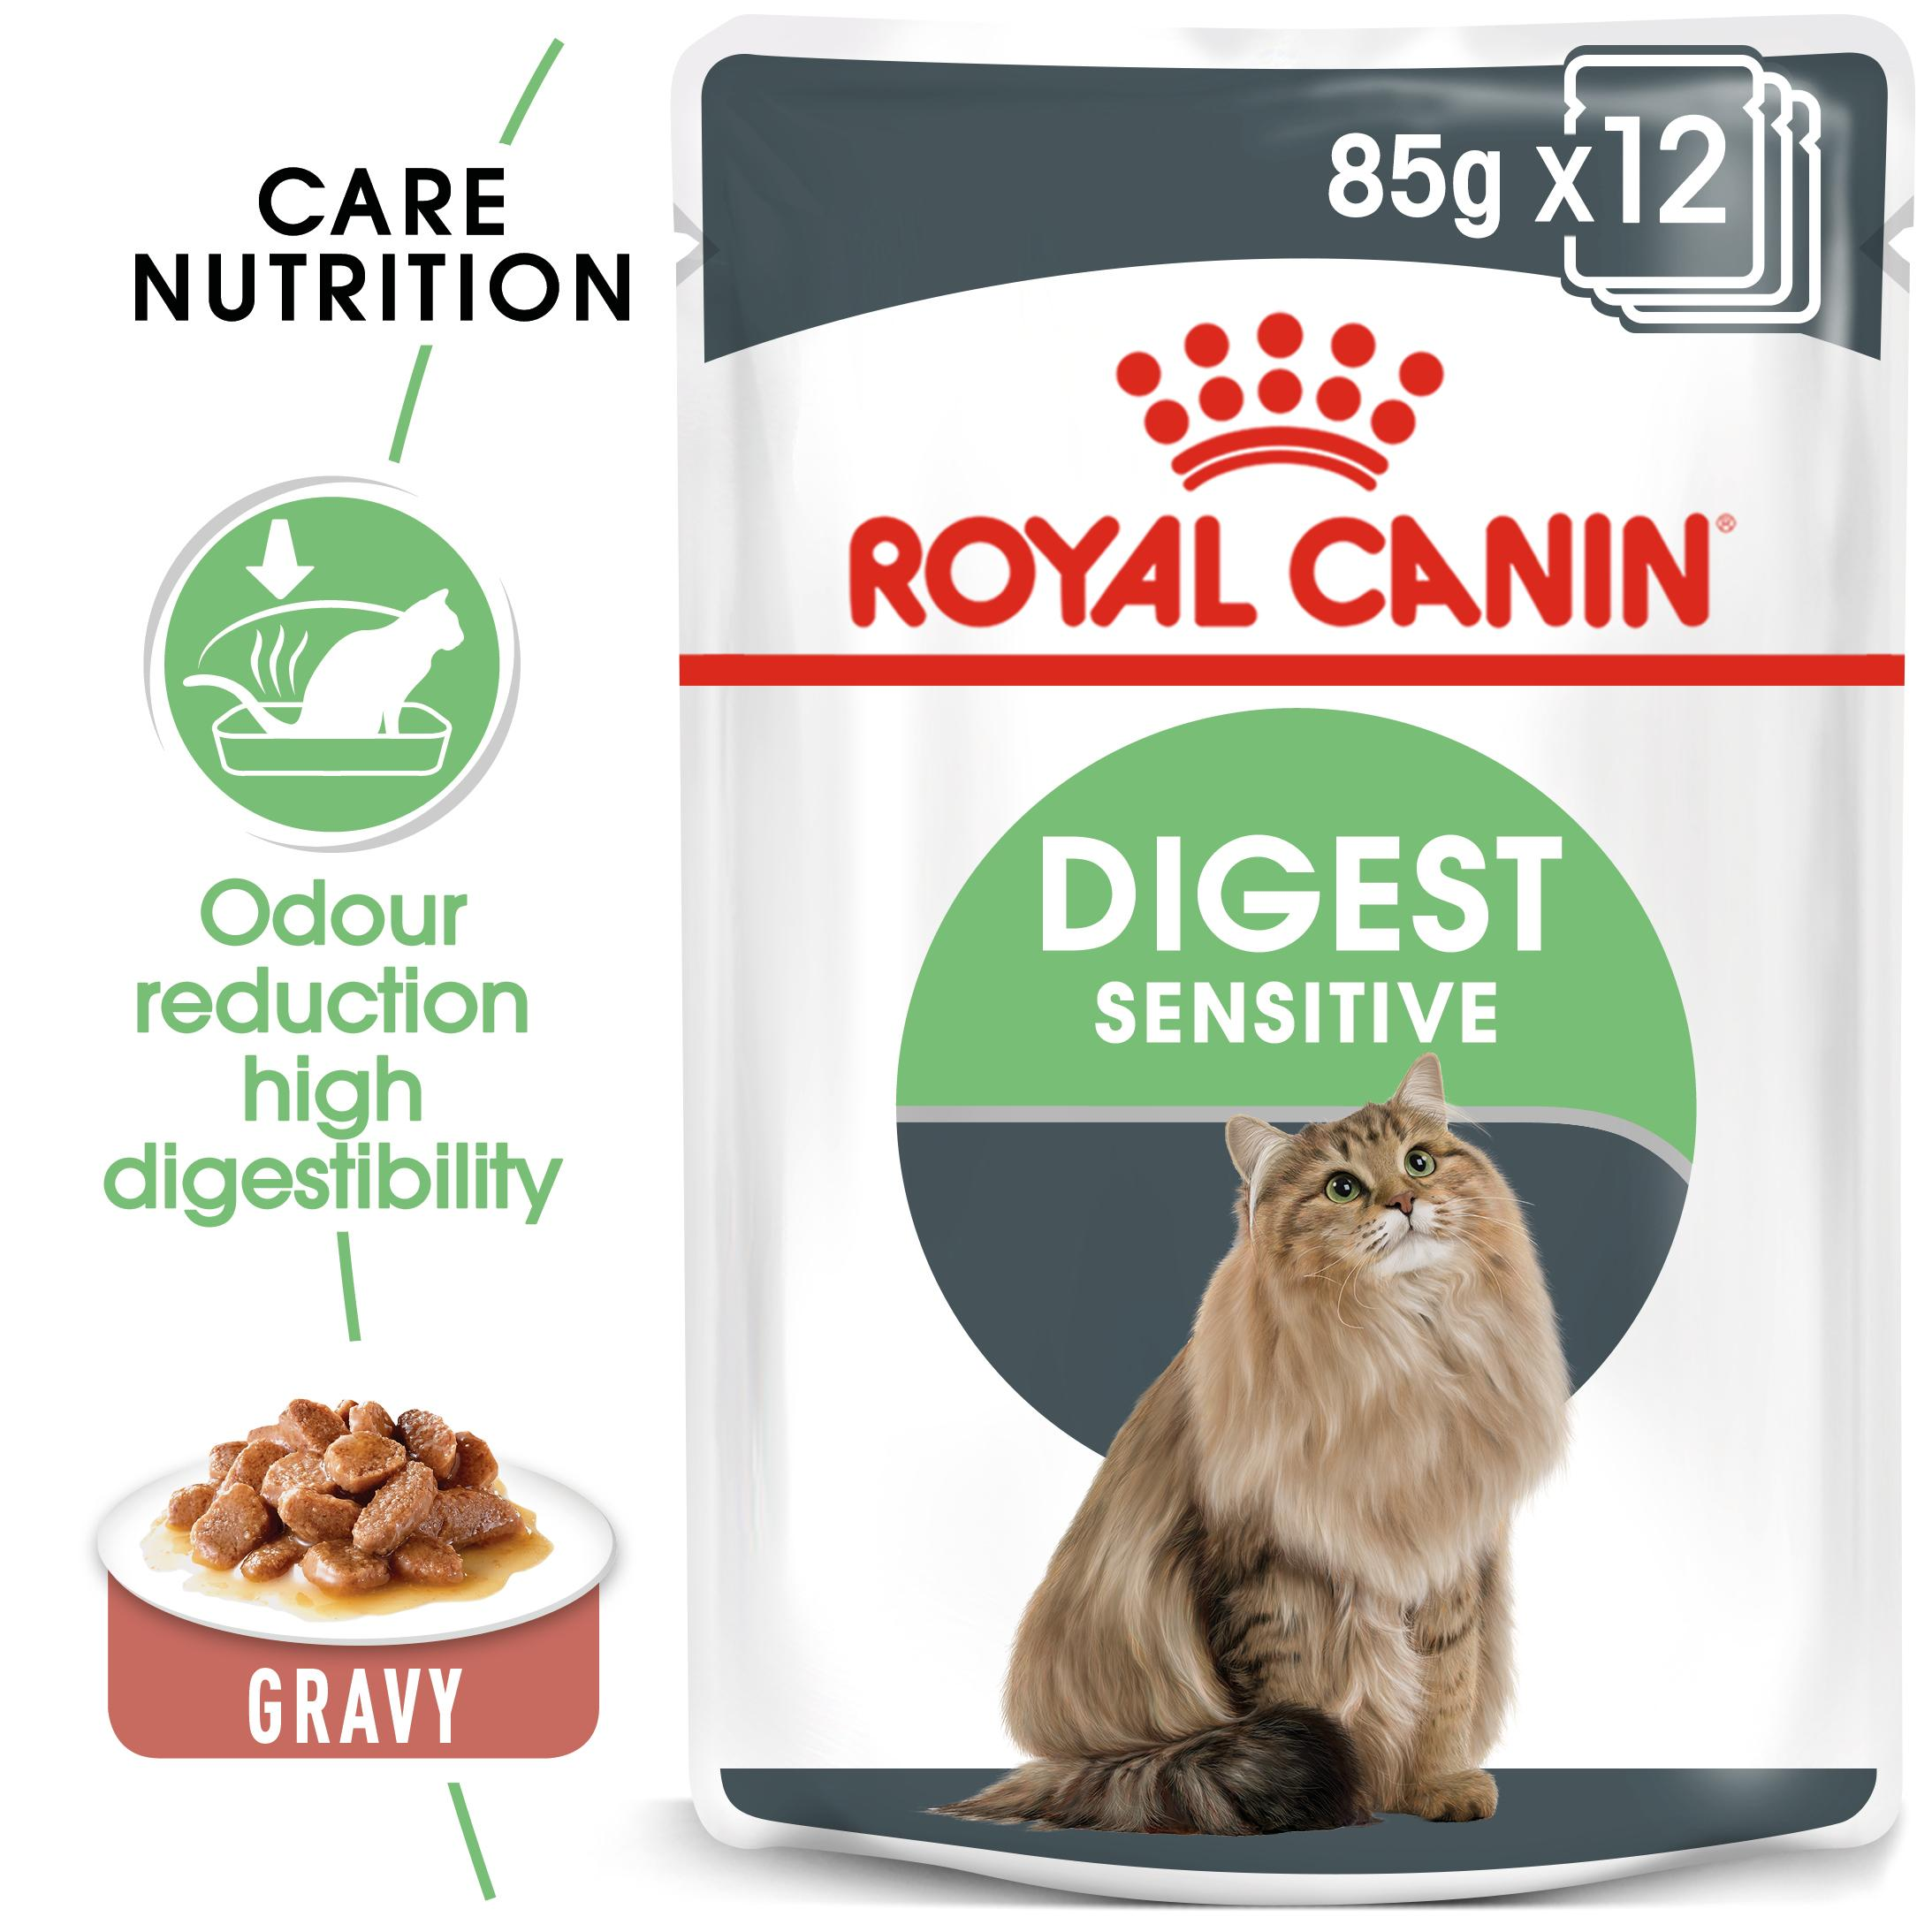 ROYAL CANIN® Digest Sensitive Care